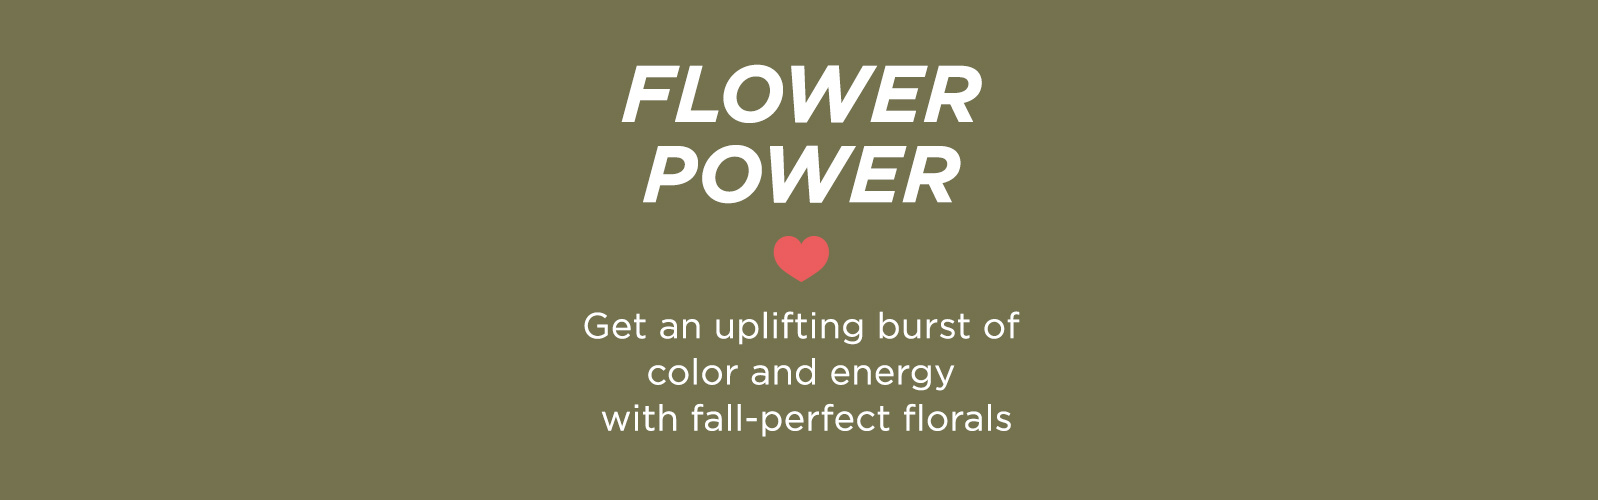 Flower Power - Get an uplifting burst of color & energy with fall-perfect florals